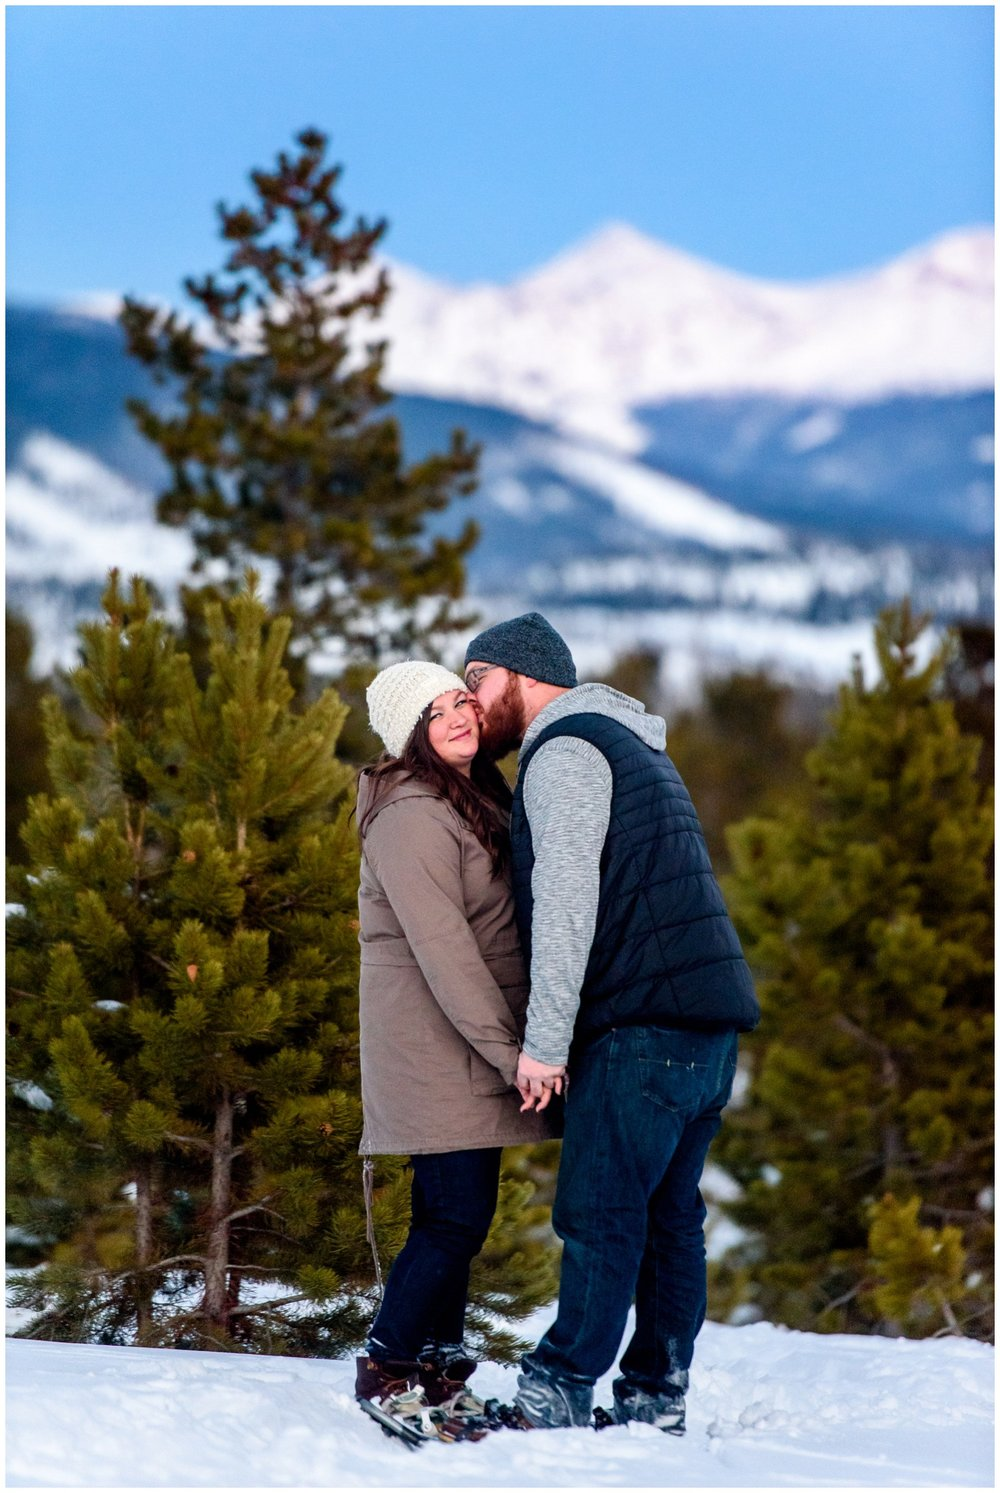 Lake-dillon-colorado-winter-engagement-photography_0030.jpg